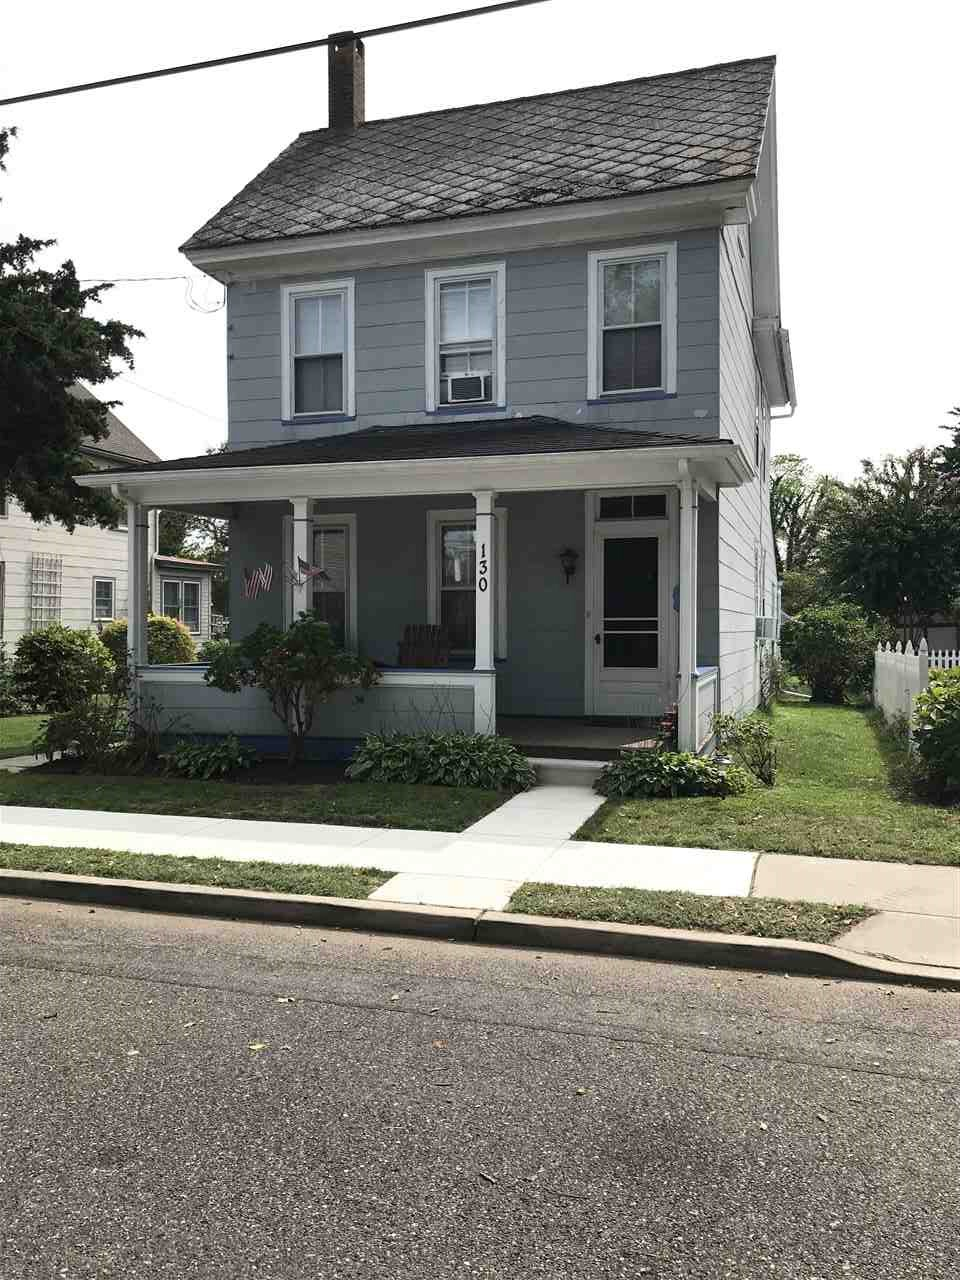 130 Emerald Avenue - West Cape May